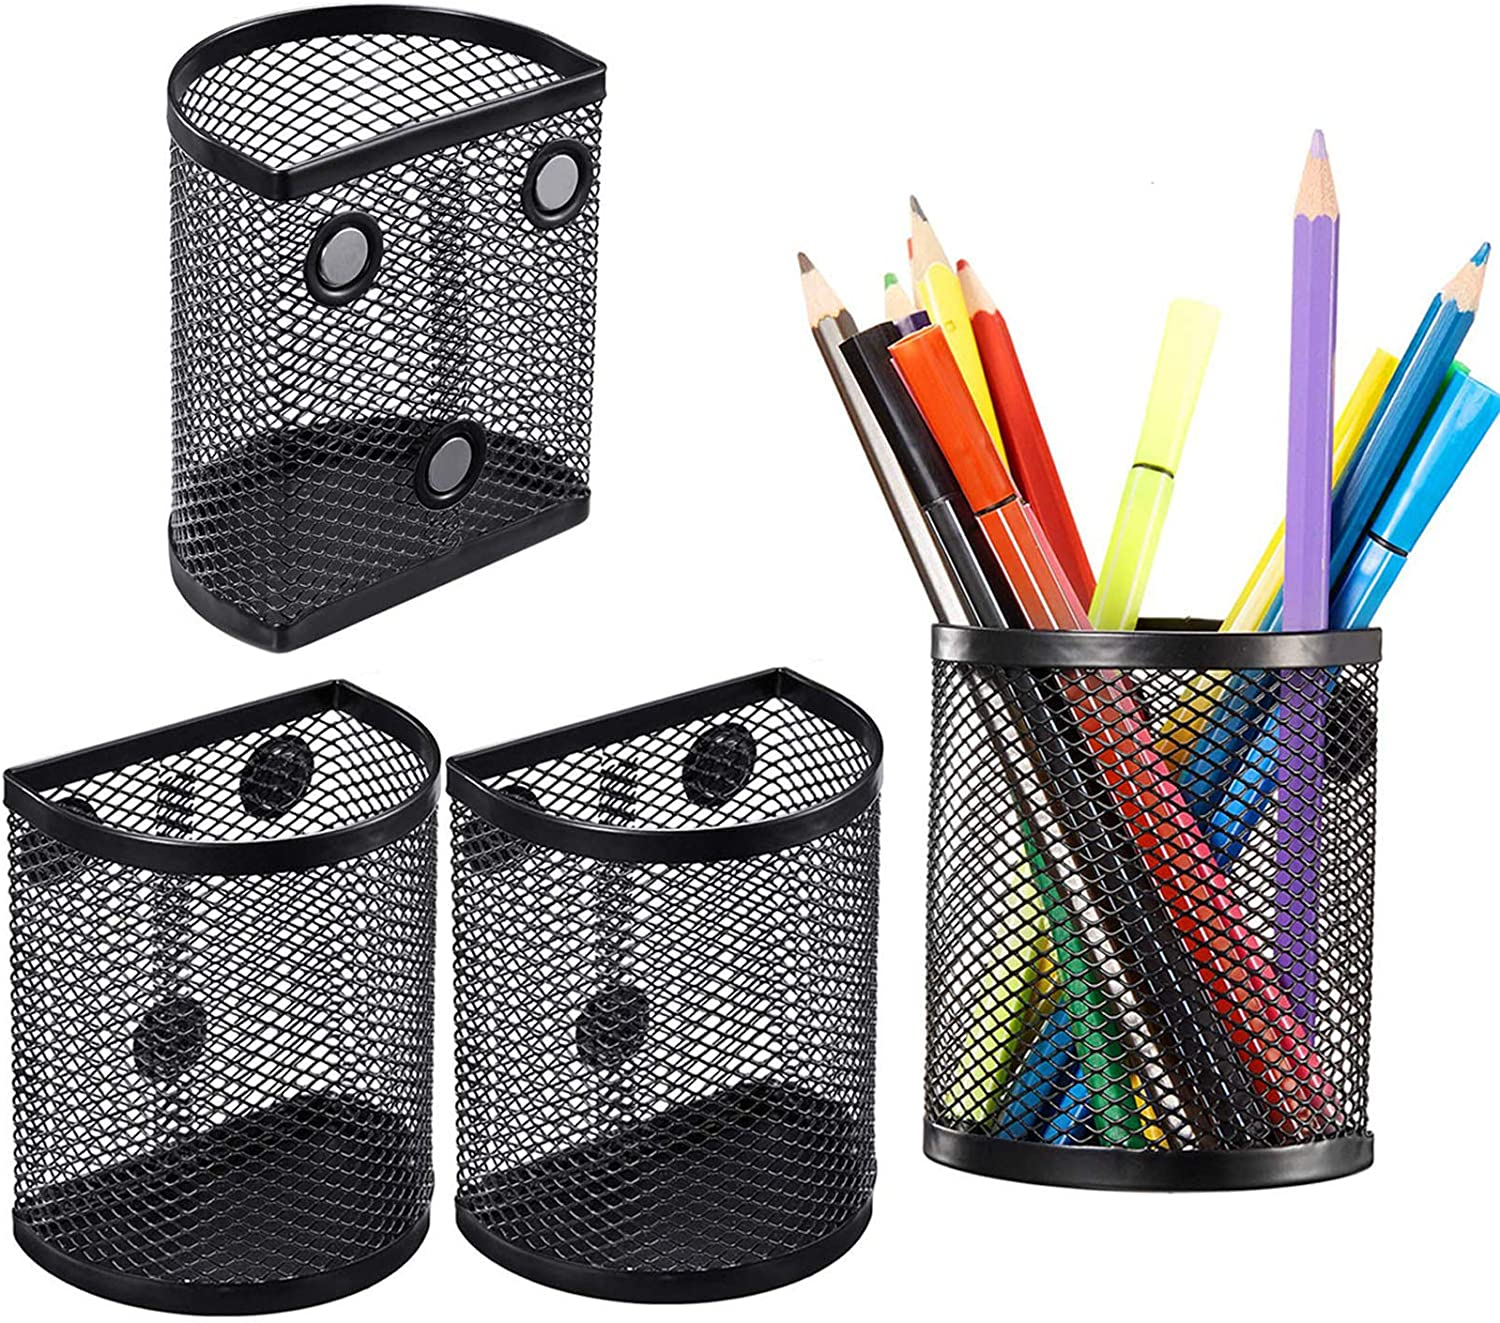 Eliseo Magnetic Pencil Holder Set of 4 Perfect Marker and Pen Organizer Set Holds Securely Your Whiteboard and Locker Accessories Mesh Storage Baskets with Magnets